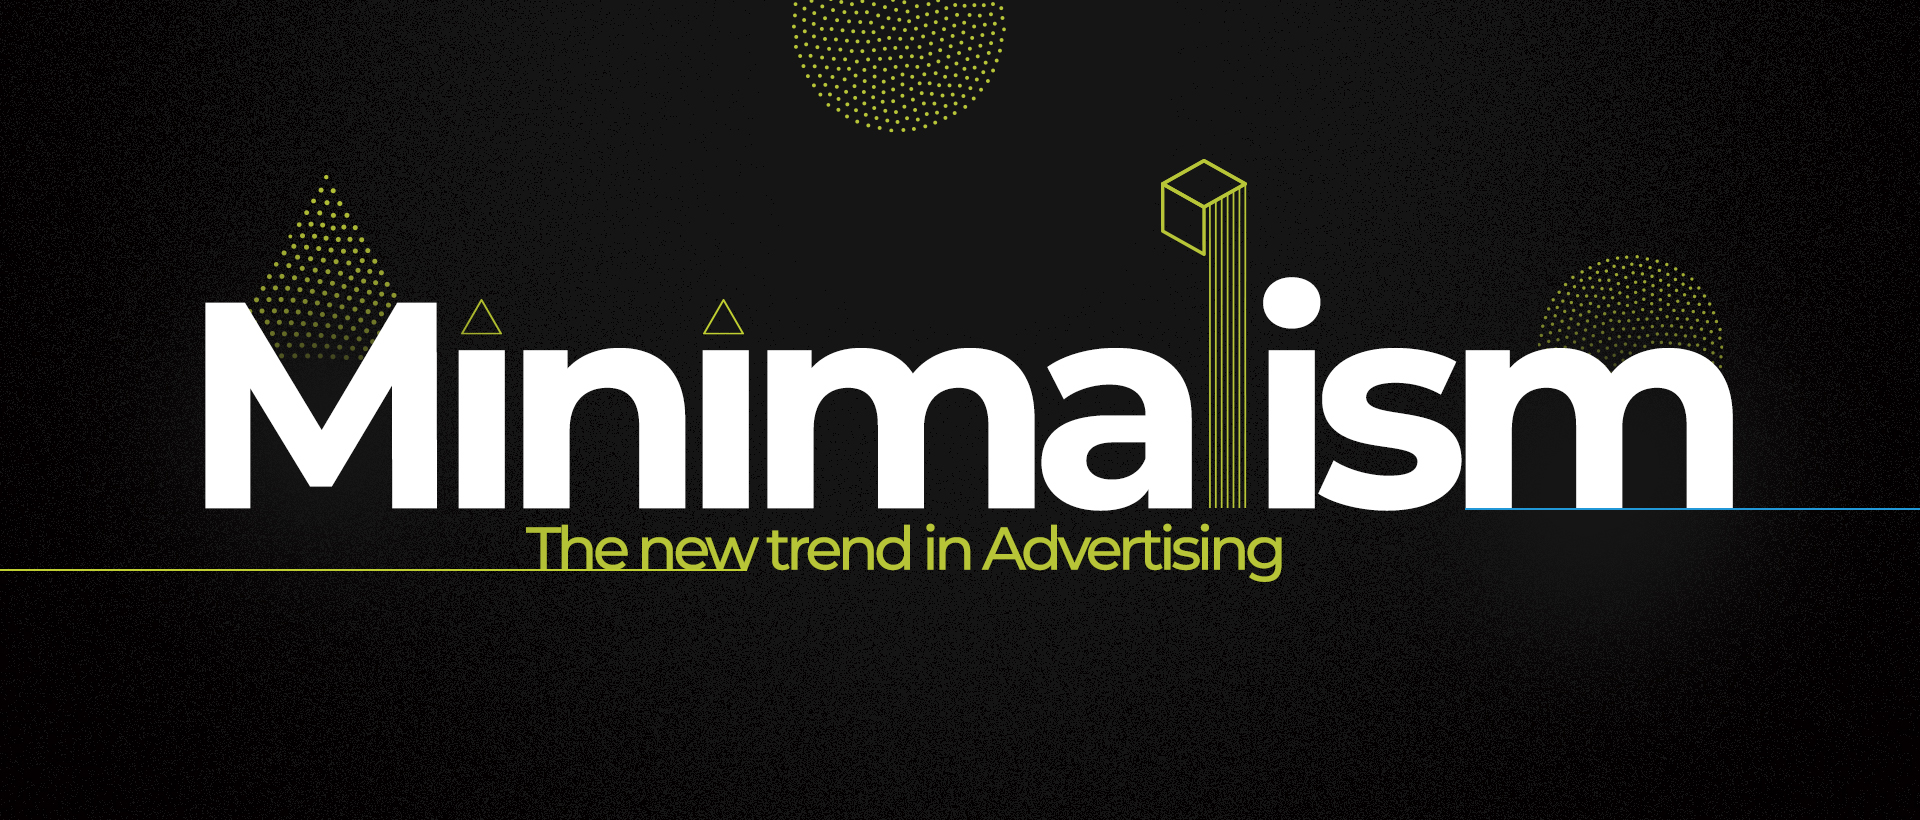 Minimalism – The new trend in Advertising